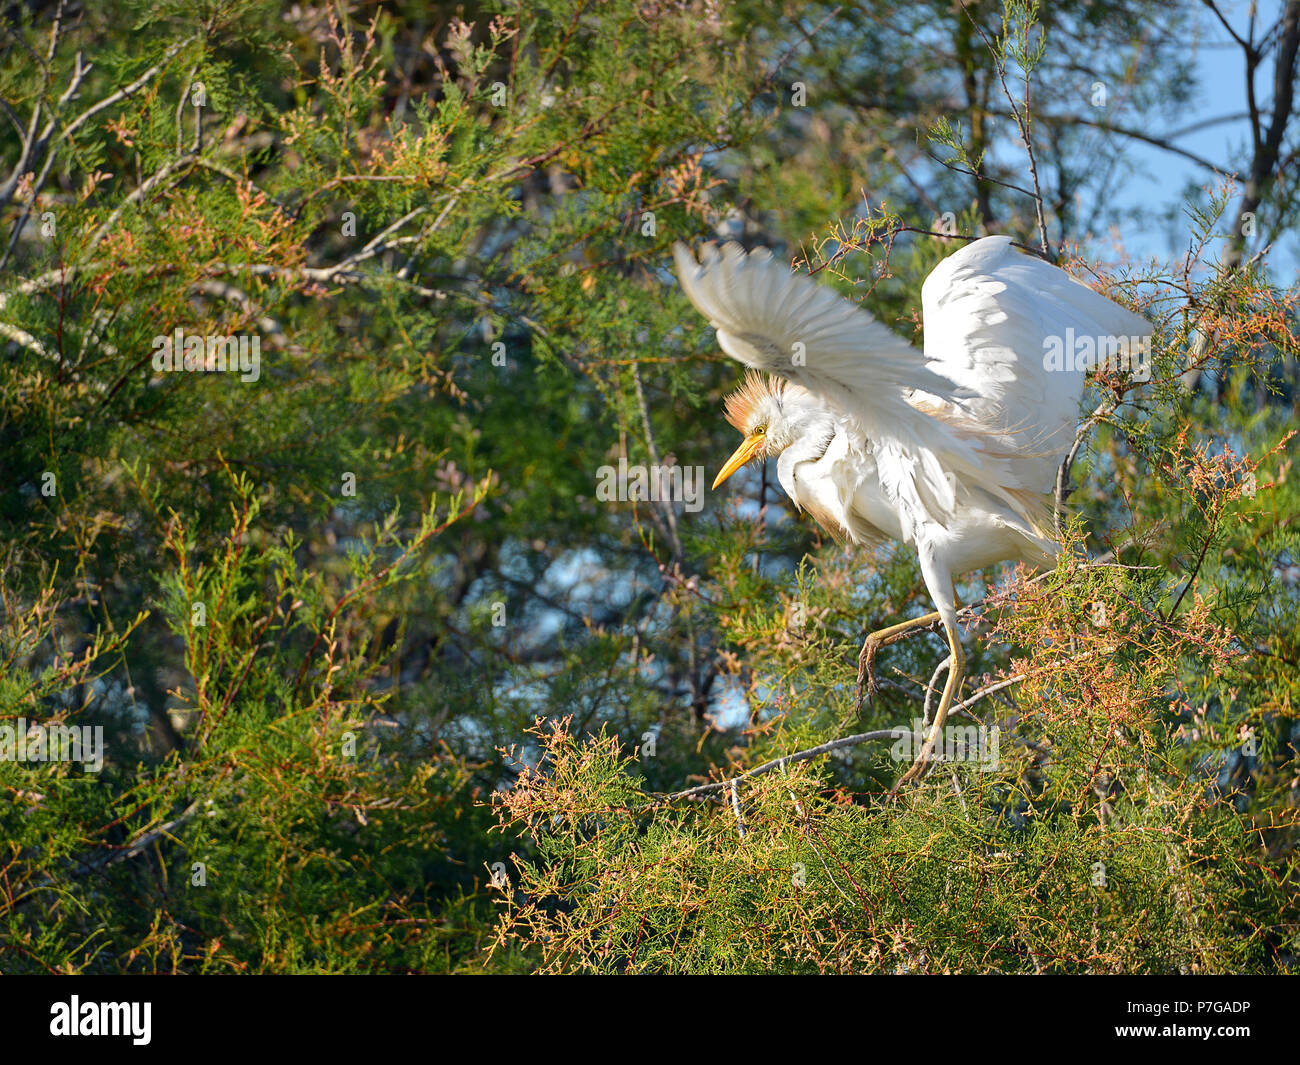 Cattle egret (Bubulcus ibis) in tree, open wings, in the Camargue is a natural region located south of Arles, France, between the Mediterranean Sea an Stock Photo